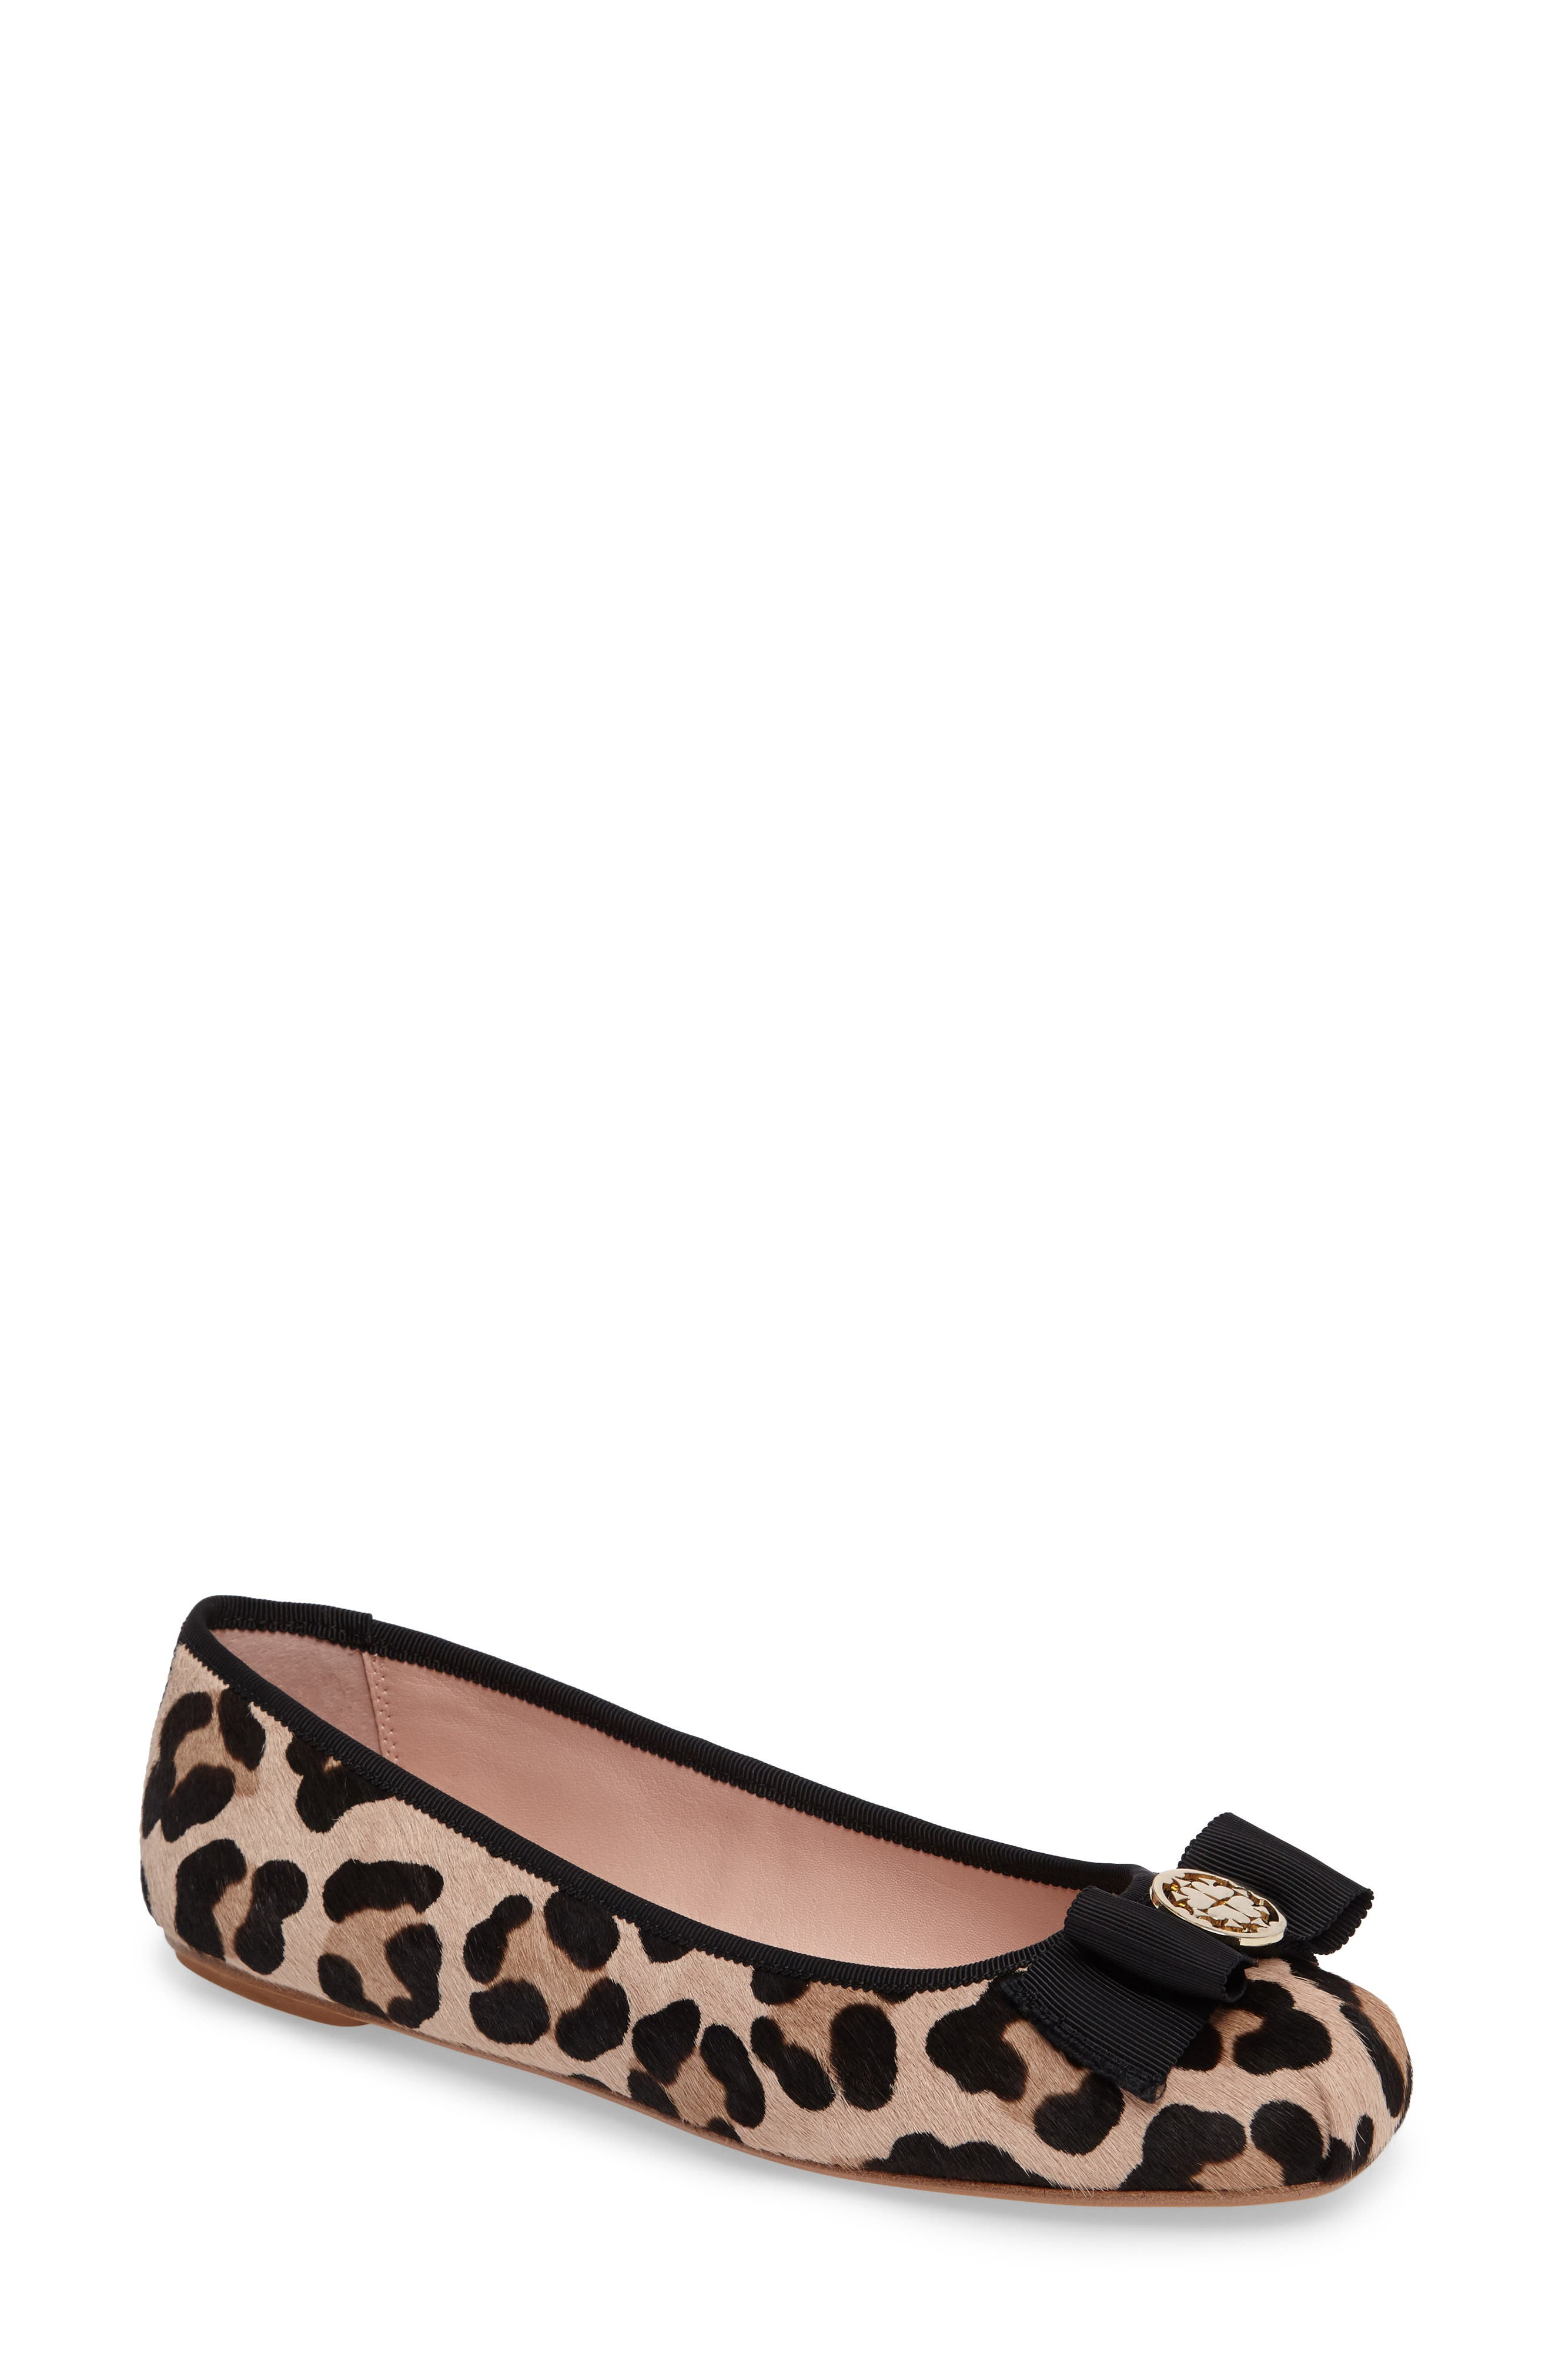 Alternate Image 1 Selected - kate spade new york fontana too genuine calf hair ballet flat (Women)